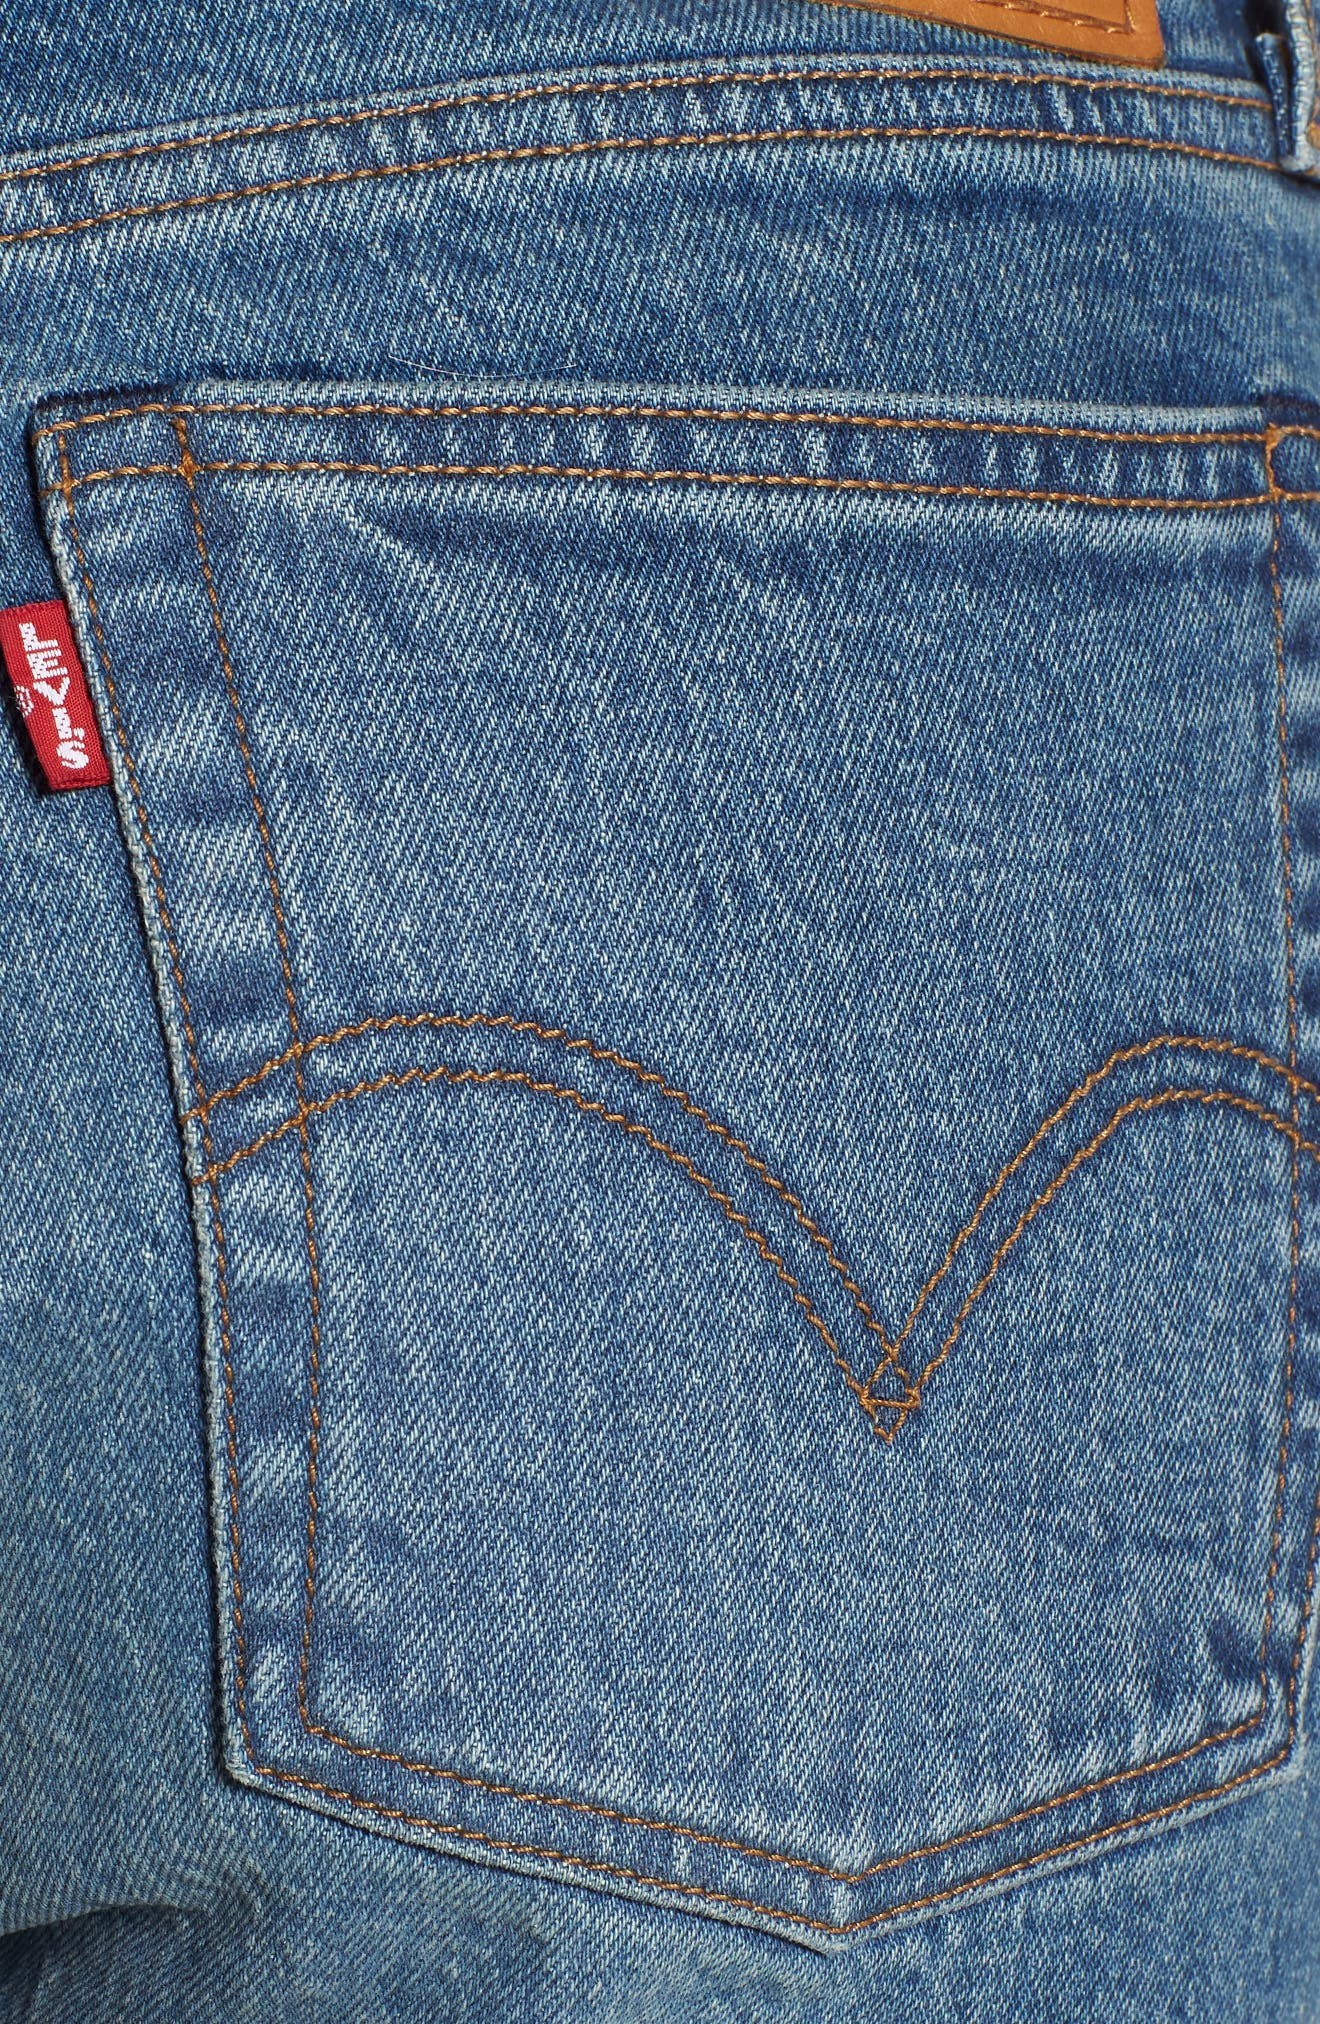 LEVI'S<SUP>®</SUP>, Wedgie Icon Fit High Waist Ankle Jeans, Alternate thumbnail 5, color, THESE DREAMS